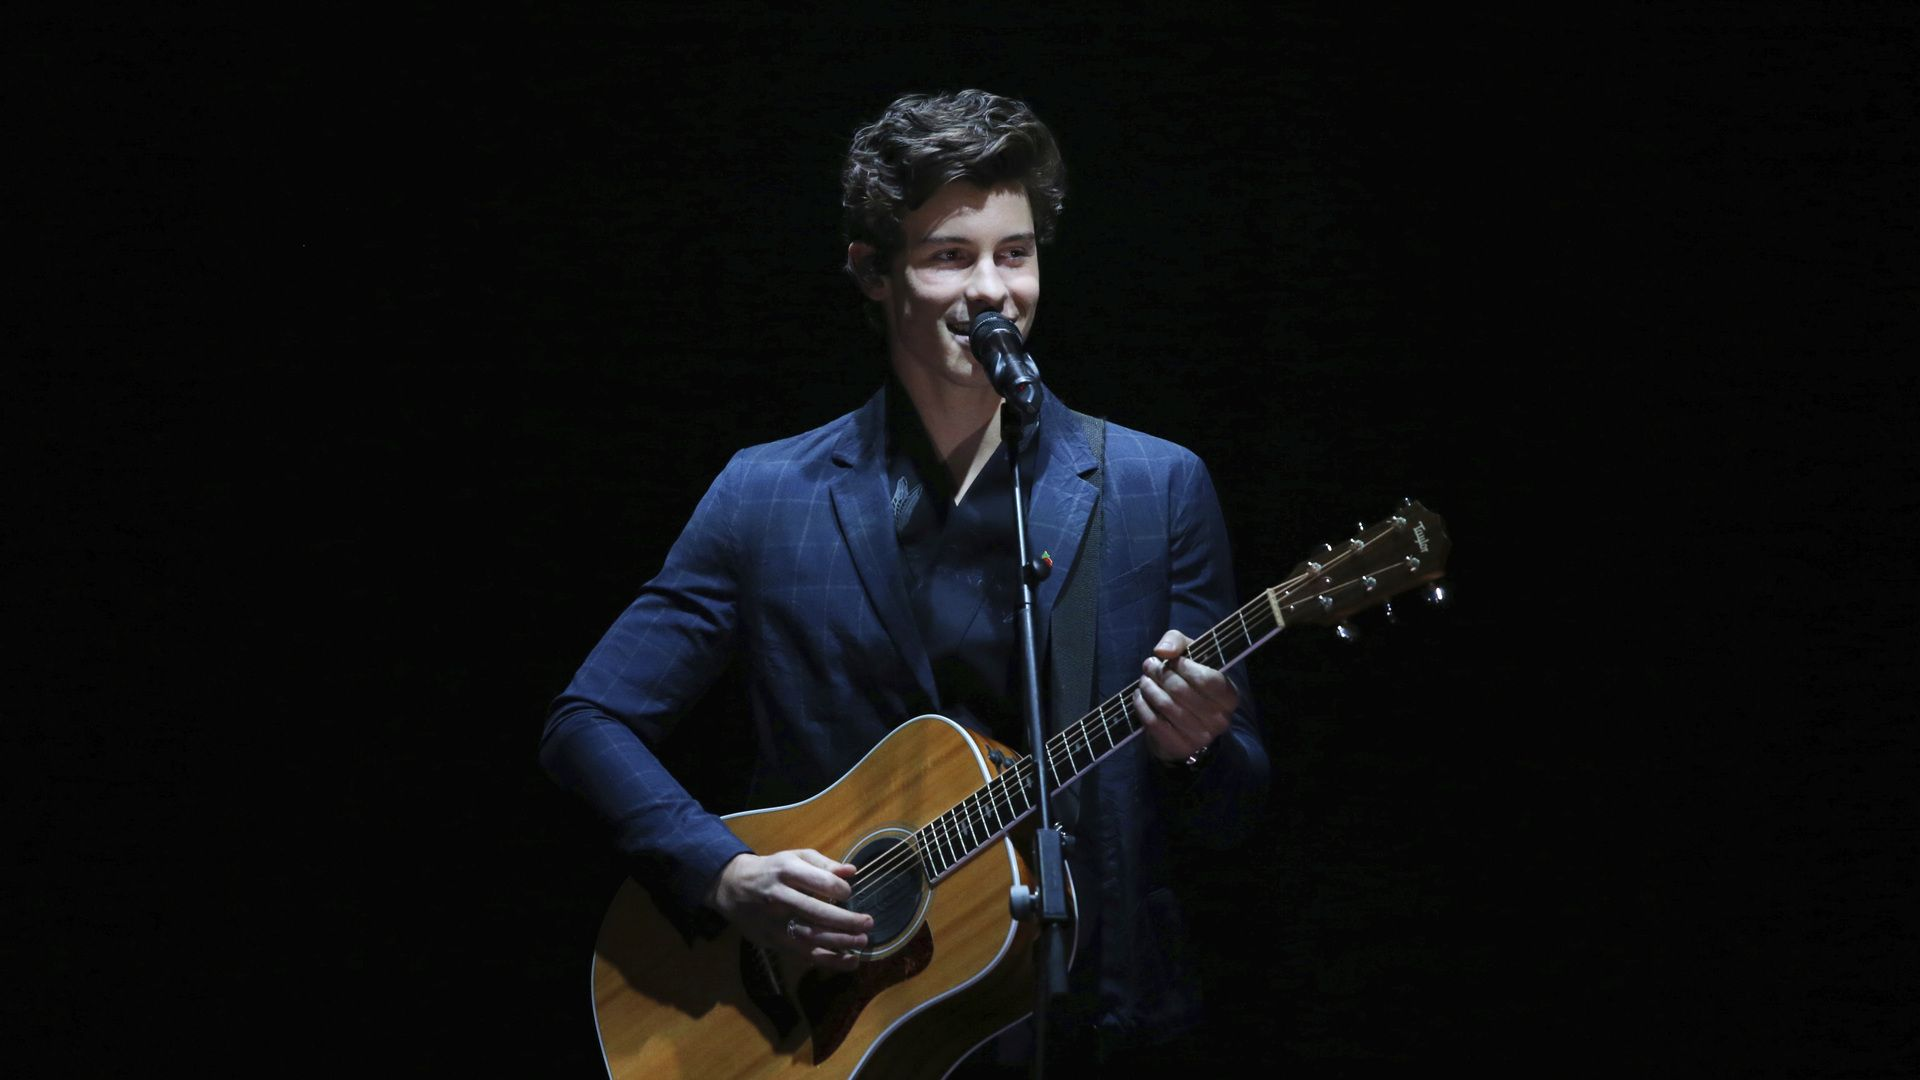 1920x1080 Shawn Mendes Laptop Full HD 1080P HD 4k